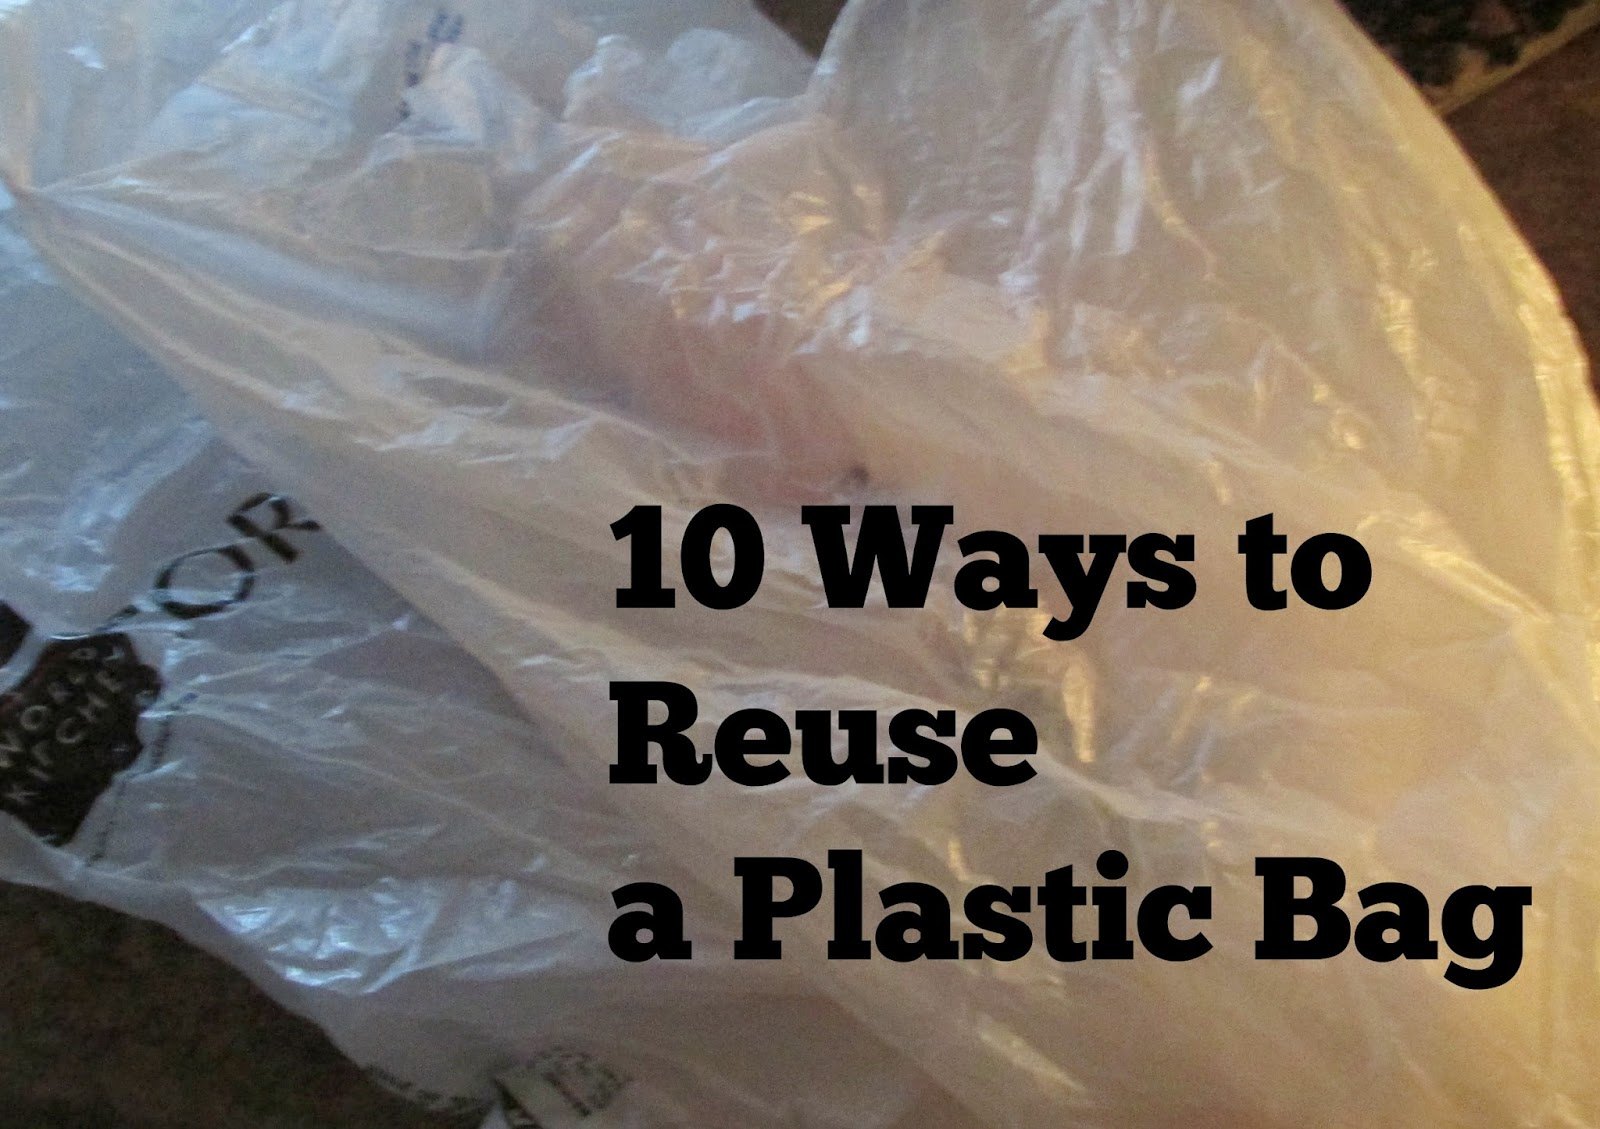 10 ways to Reuse a Plastic Bag